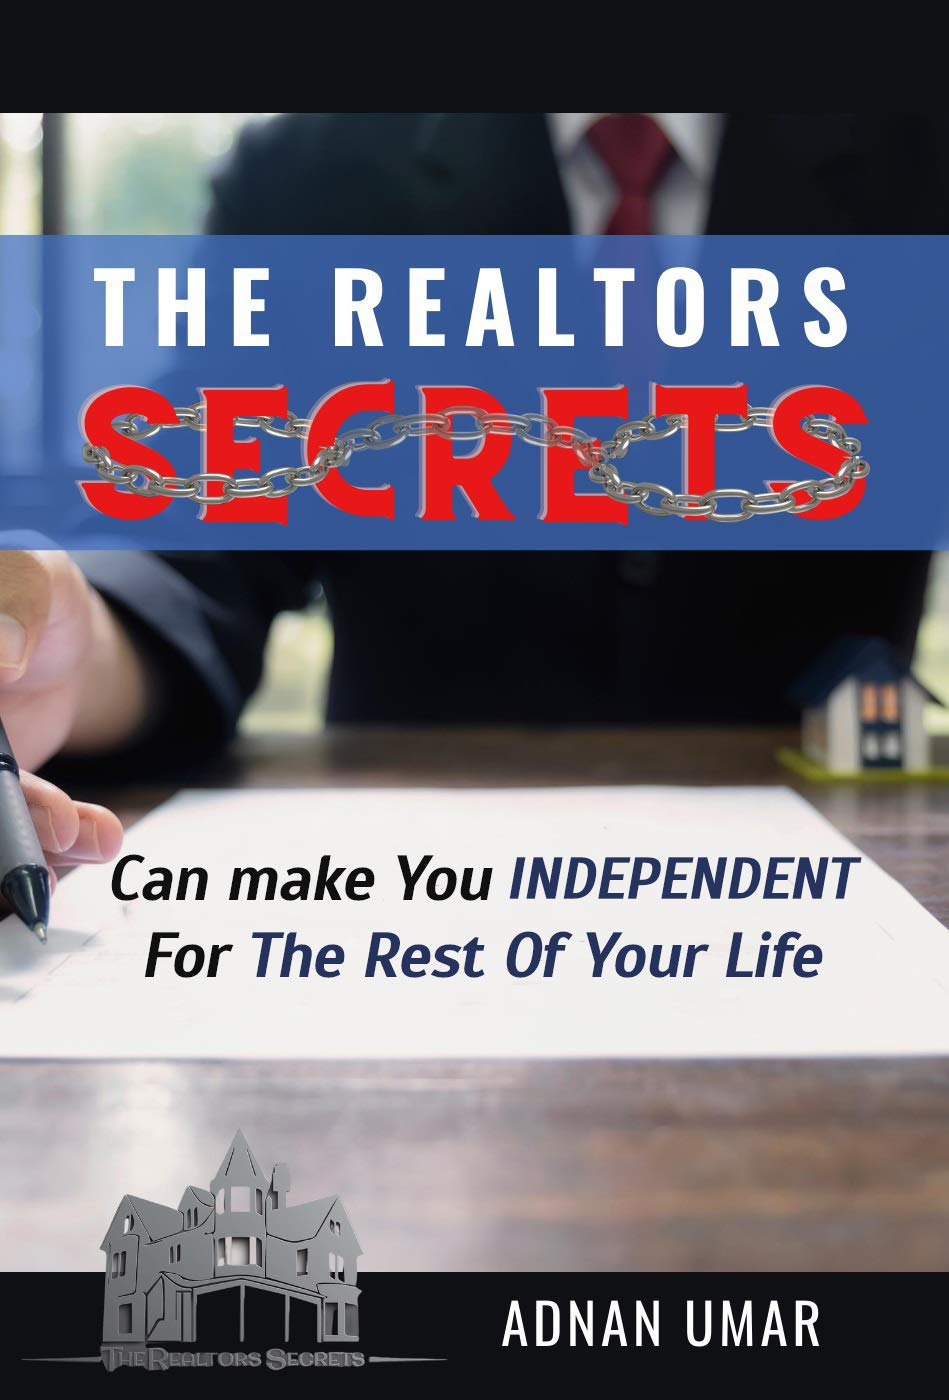 The Realtors Secrets: Can Make You Independent For The Rest Of Your Life